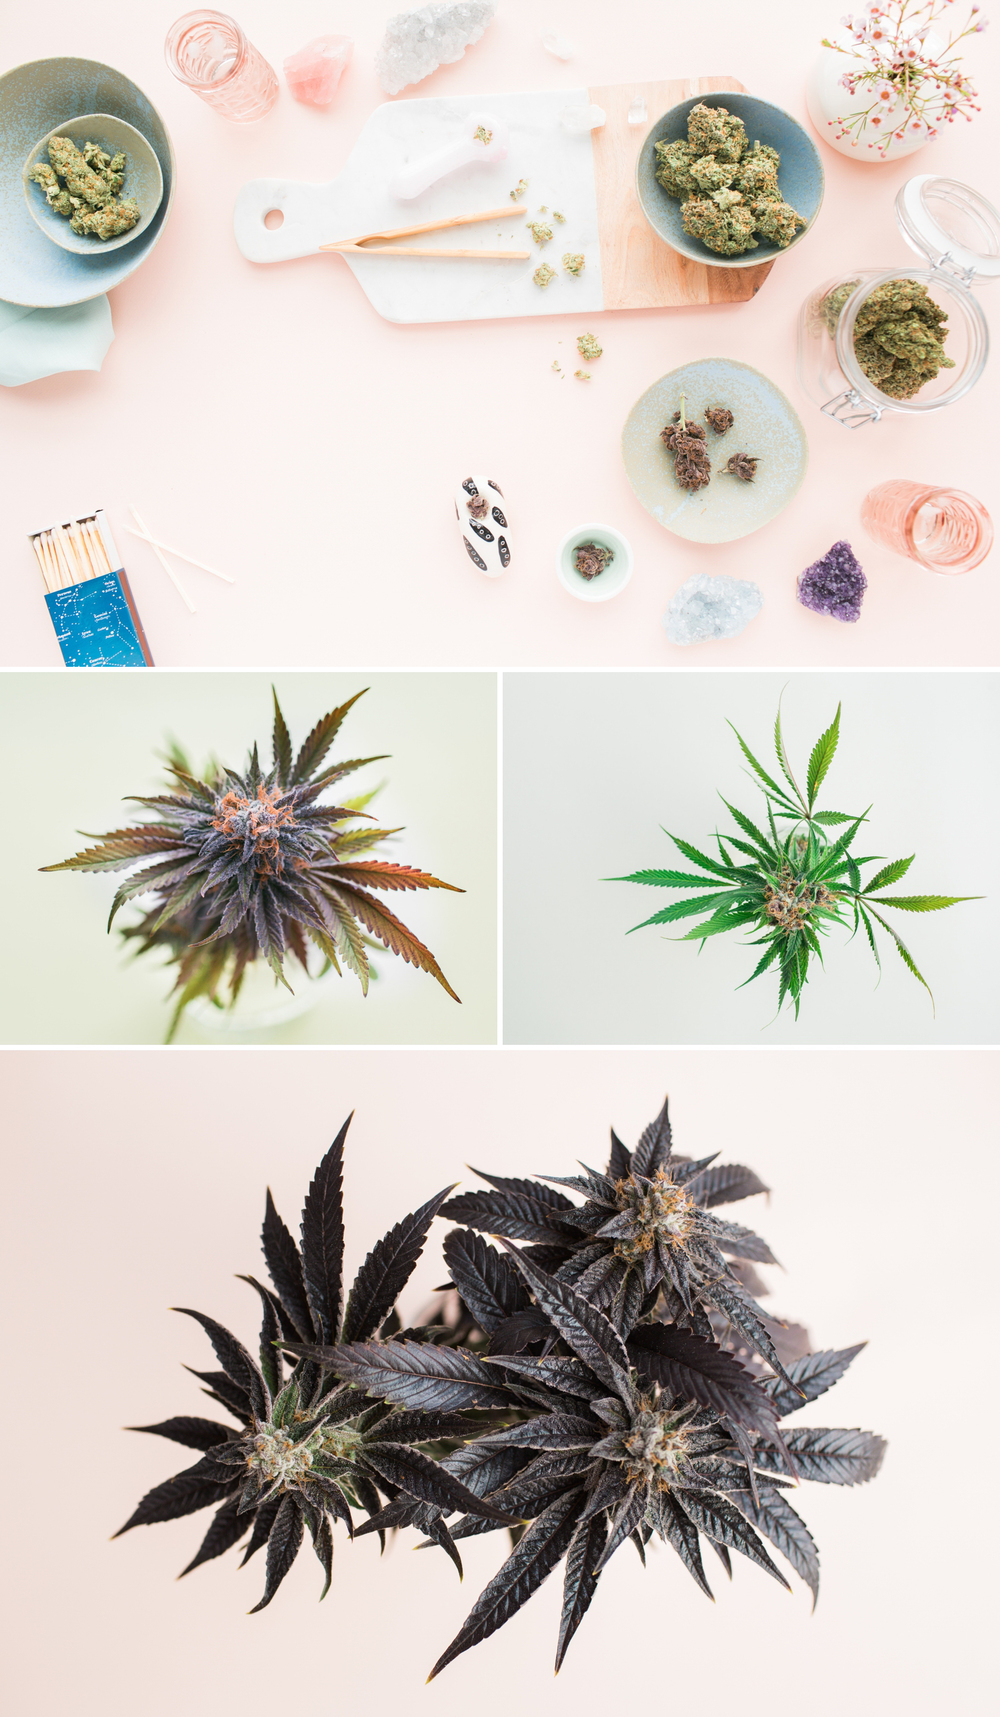 cameron-zegers-photography-marijuana-editorial-3.jpg